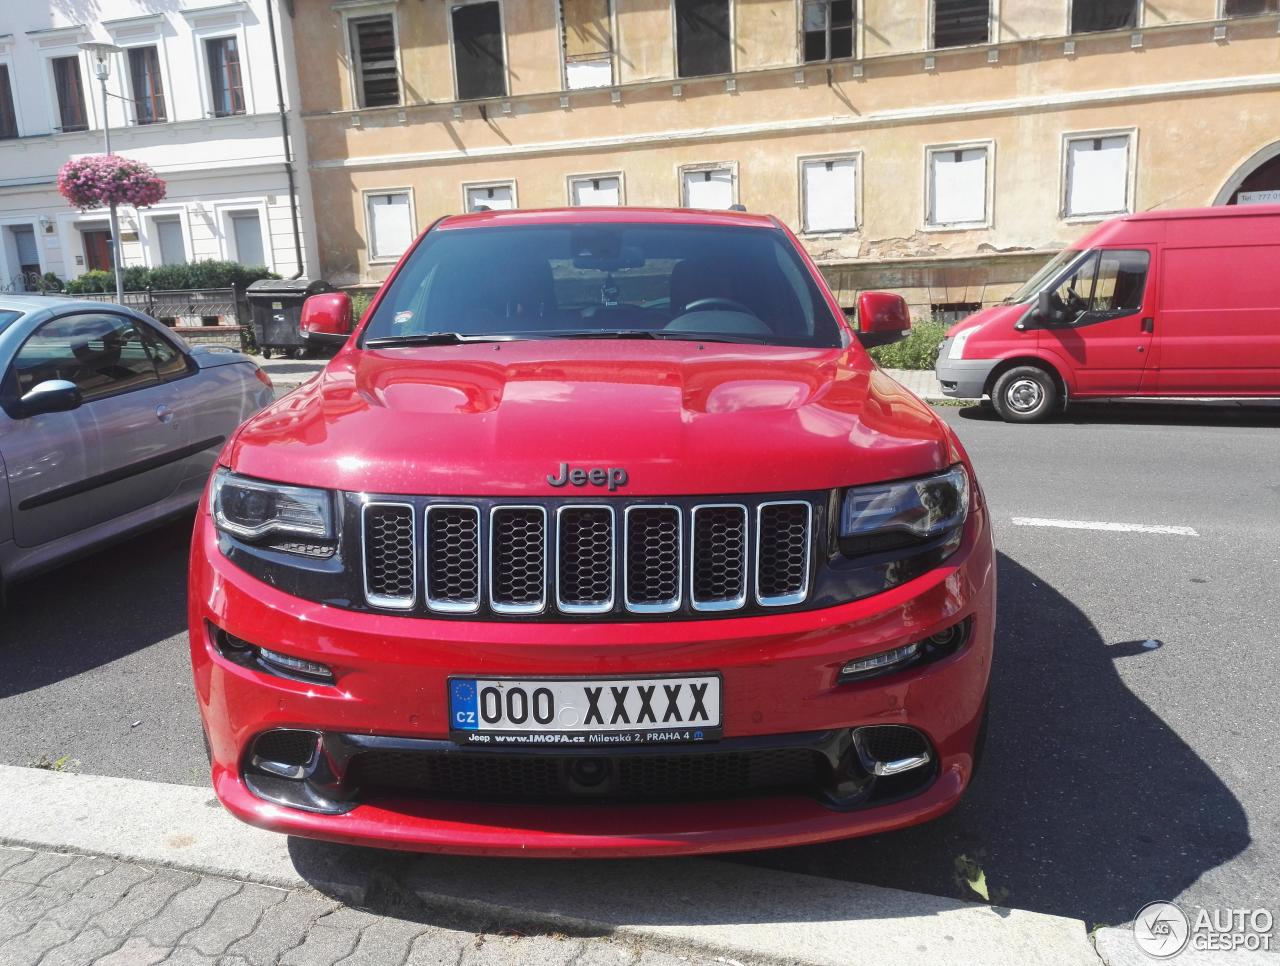 jeep grand cherokee srt 8 2013 6 august 2016 autogespot. Cars Review. Best American Auto & Cars Review